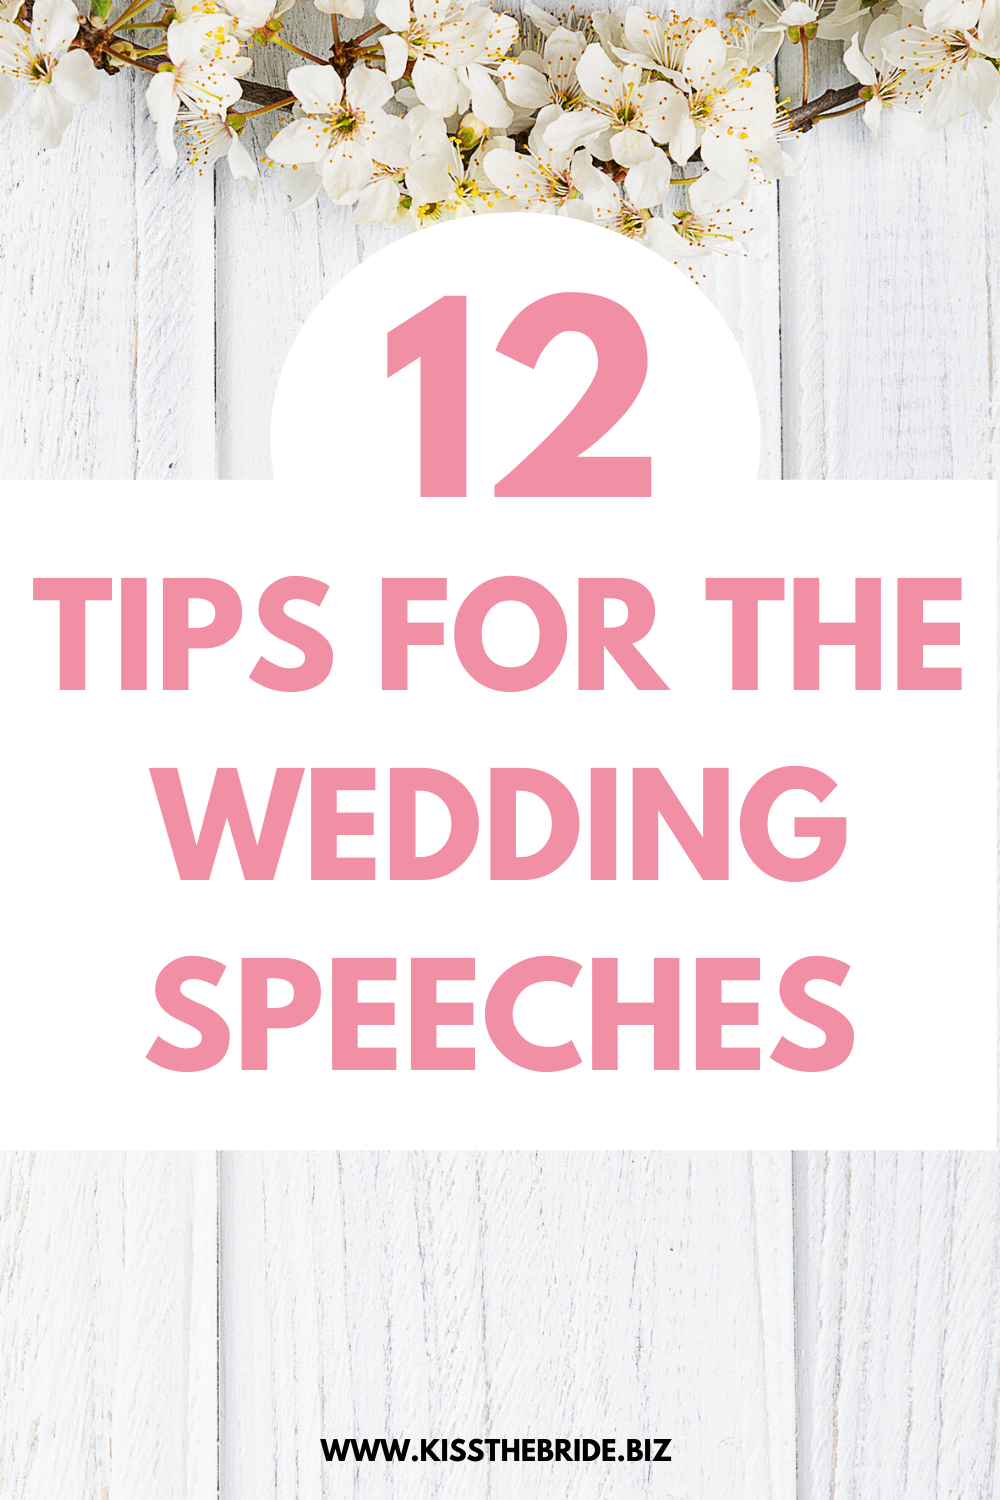 Tips for wedding speeches